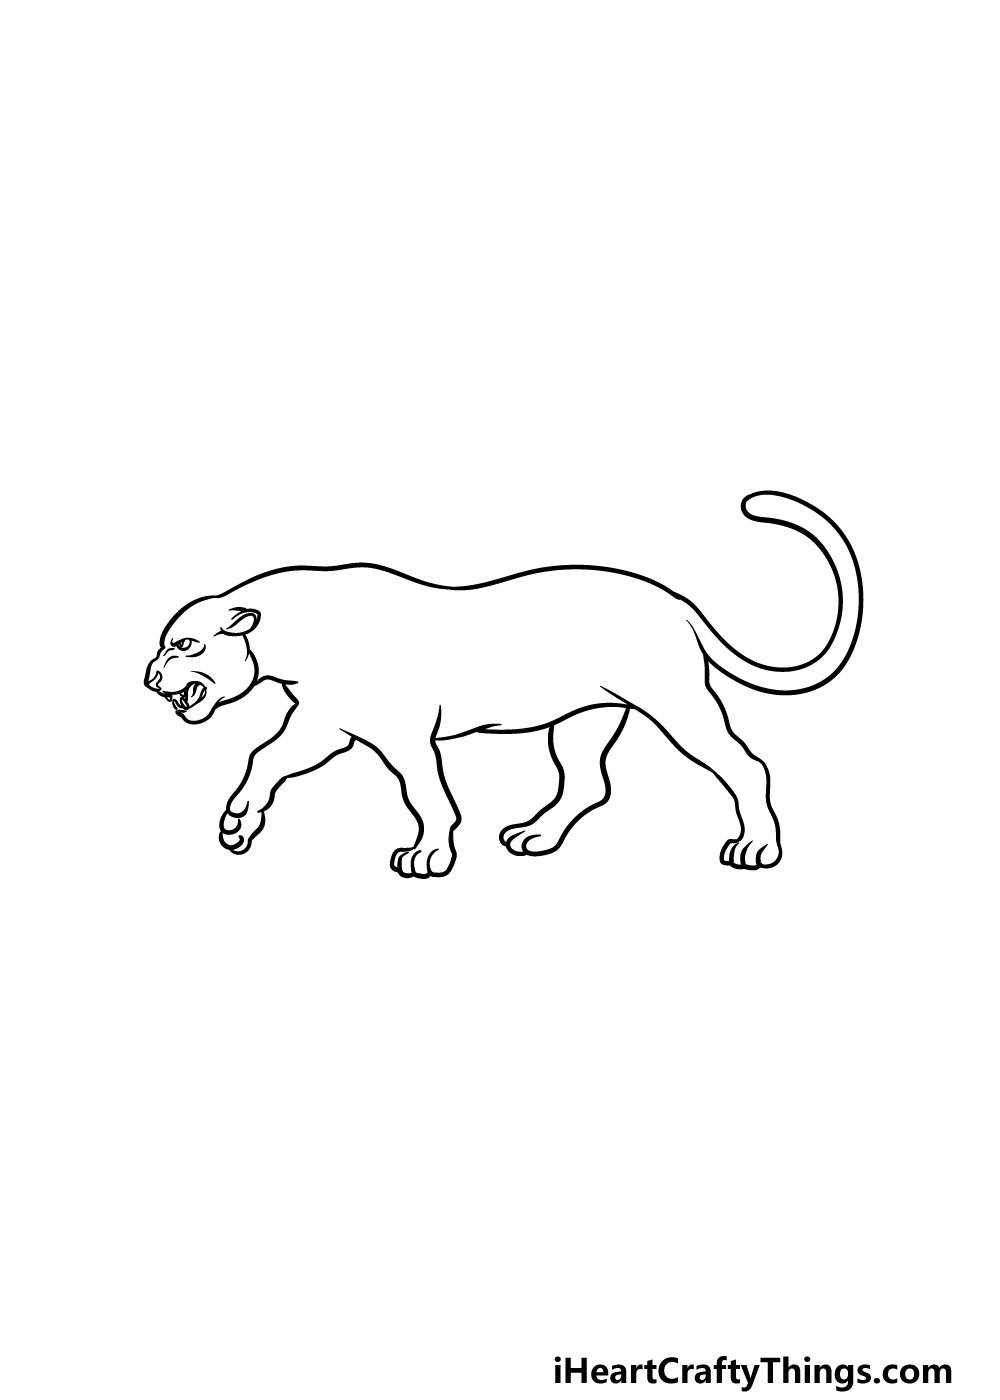 drawing a panther step 5